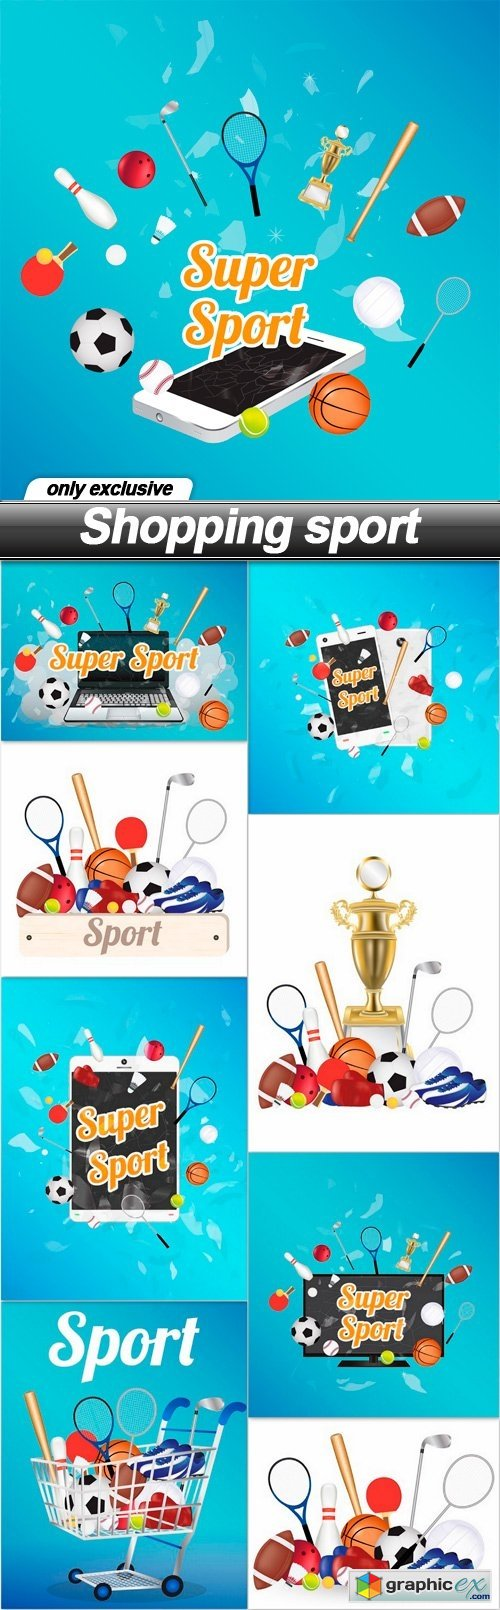 Shopping sport - 9 EPS